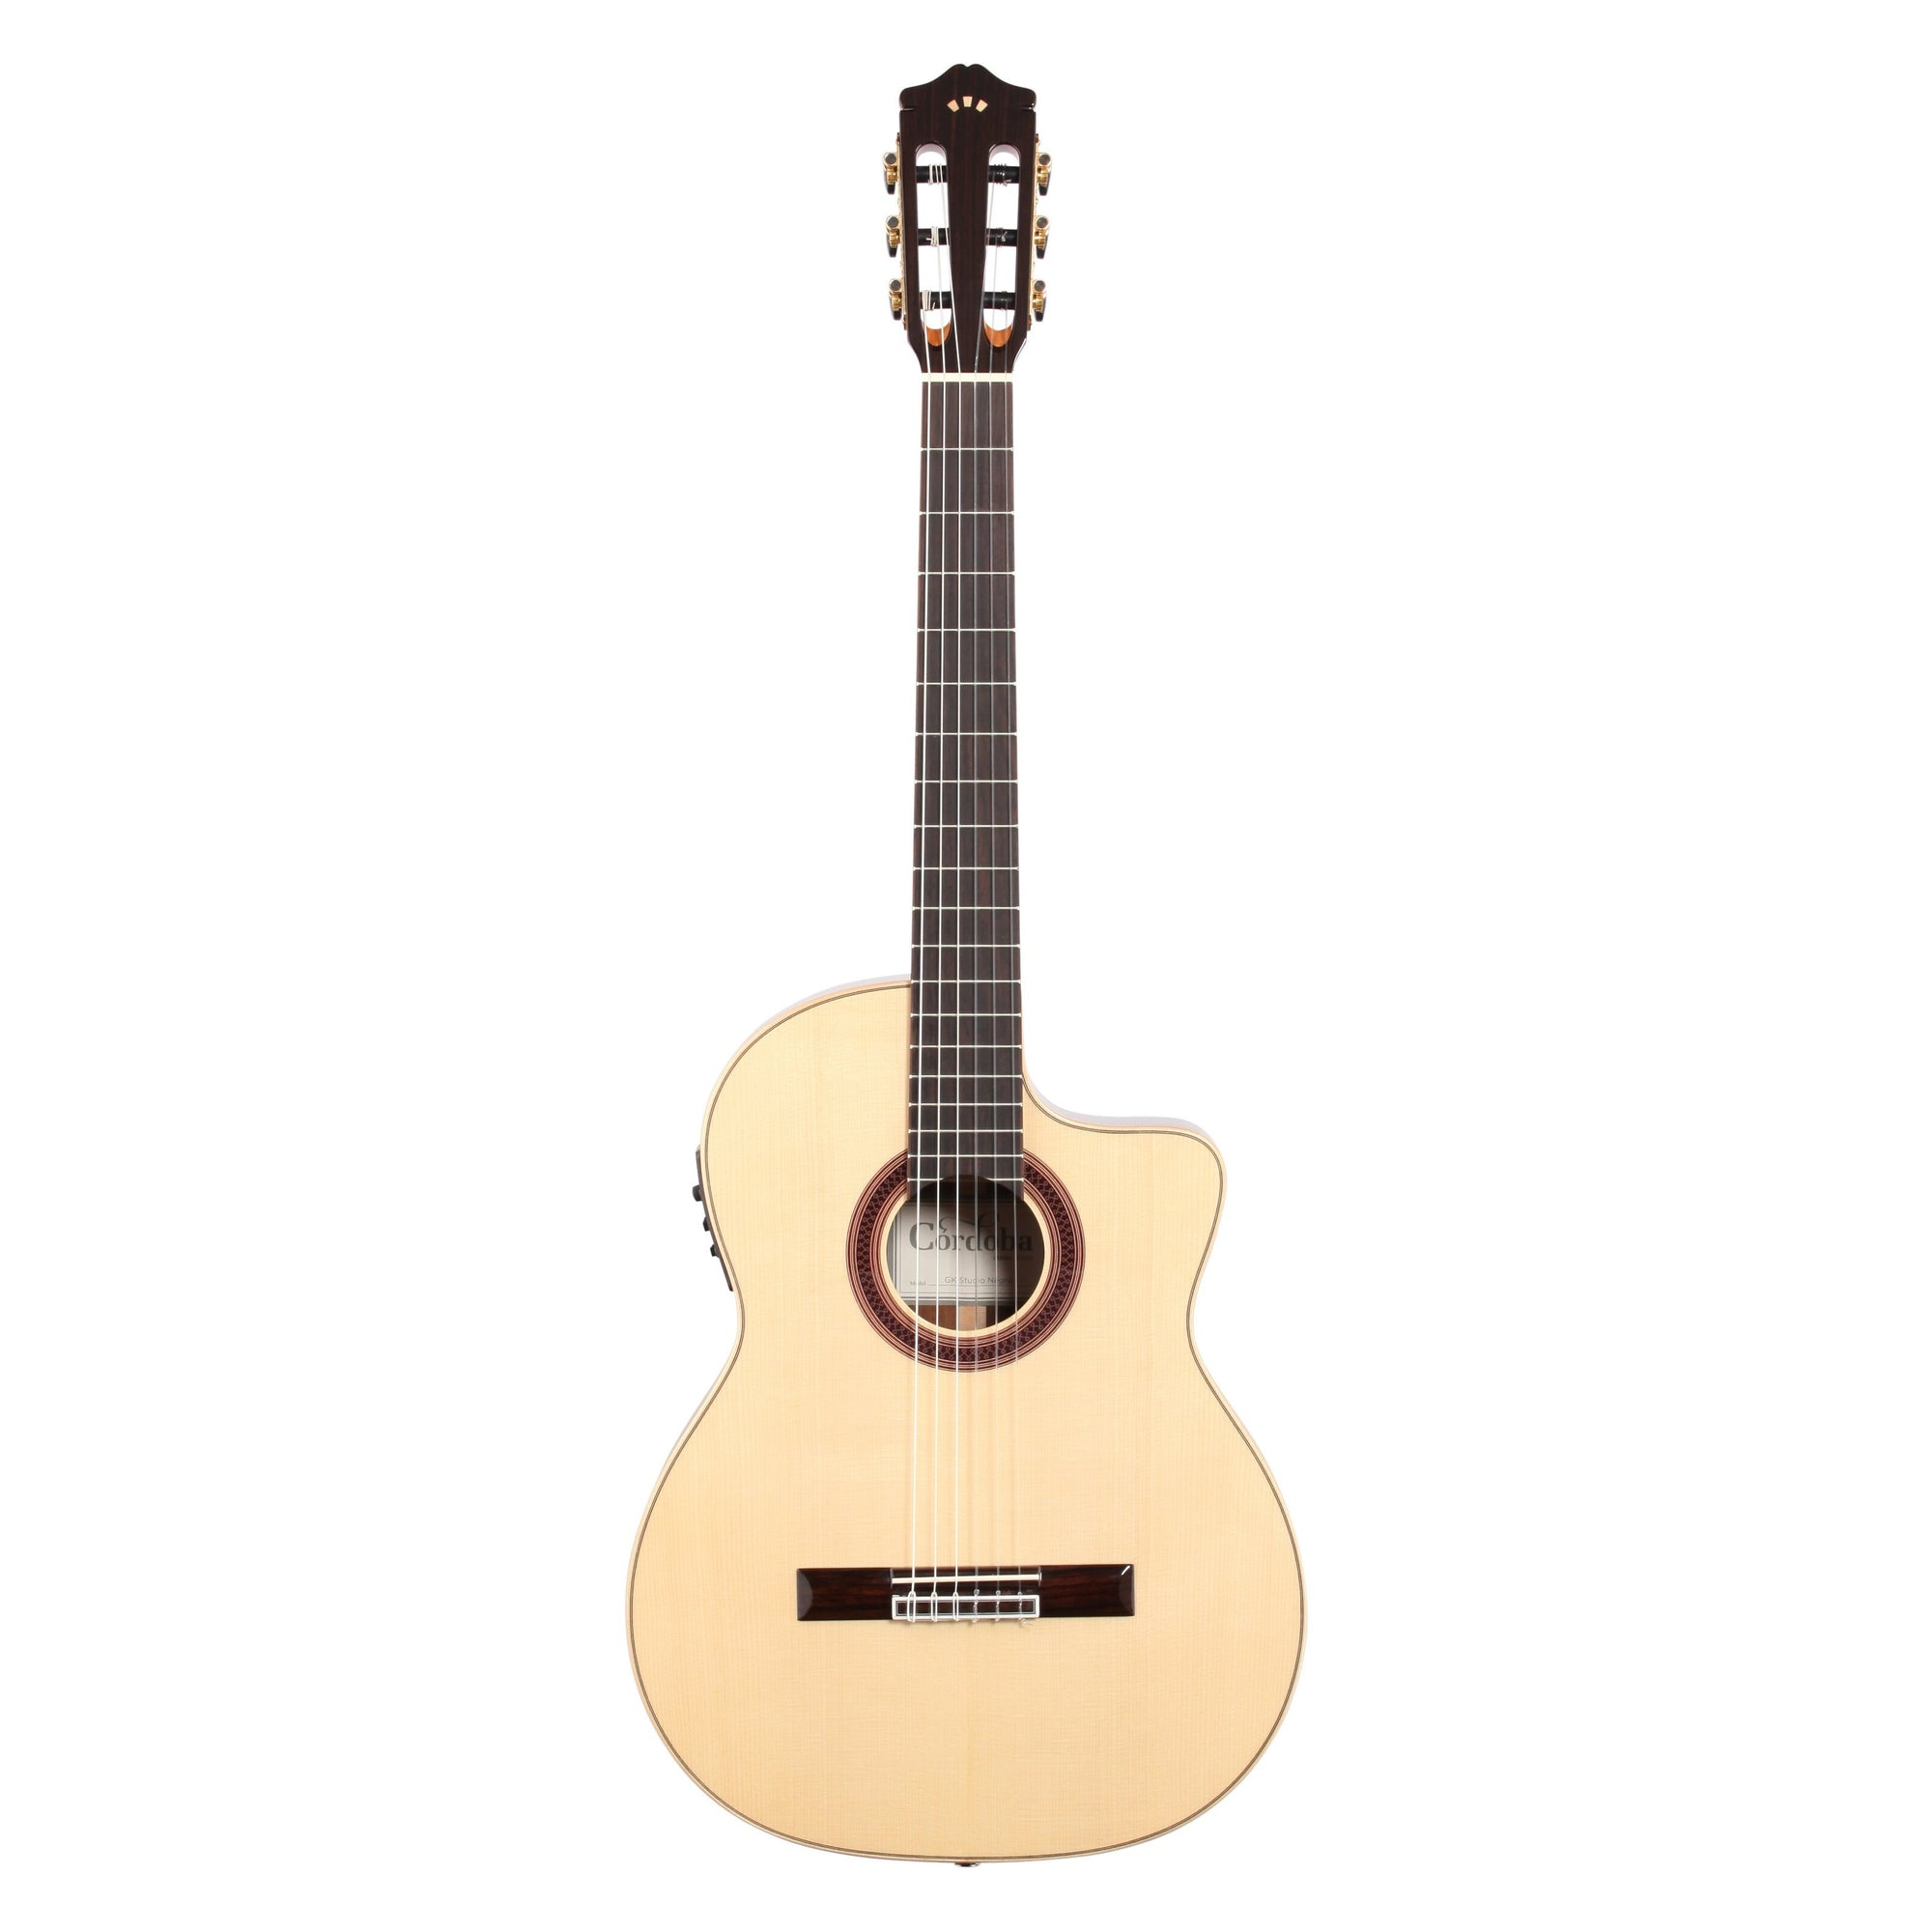 Cordoba GK Studio Negra Classical Acoustic-Electric Guitar